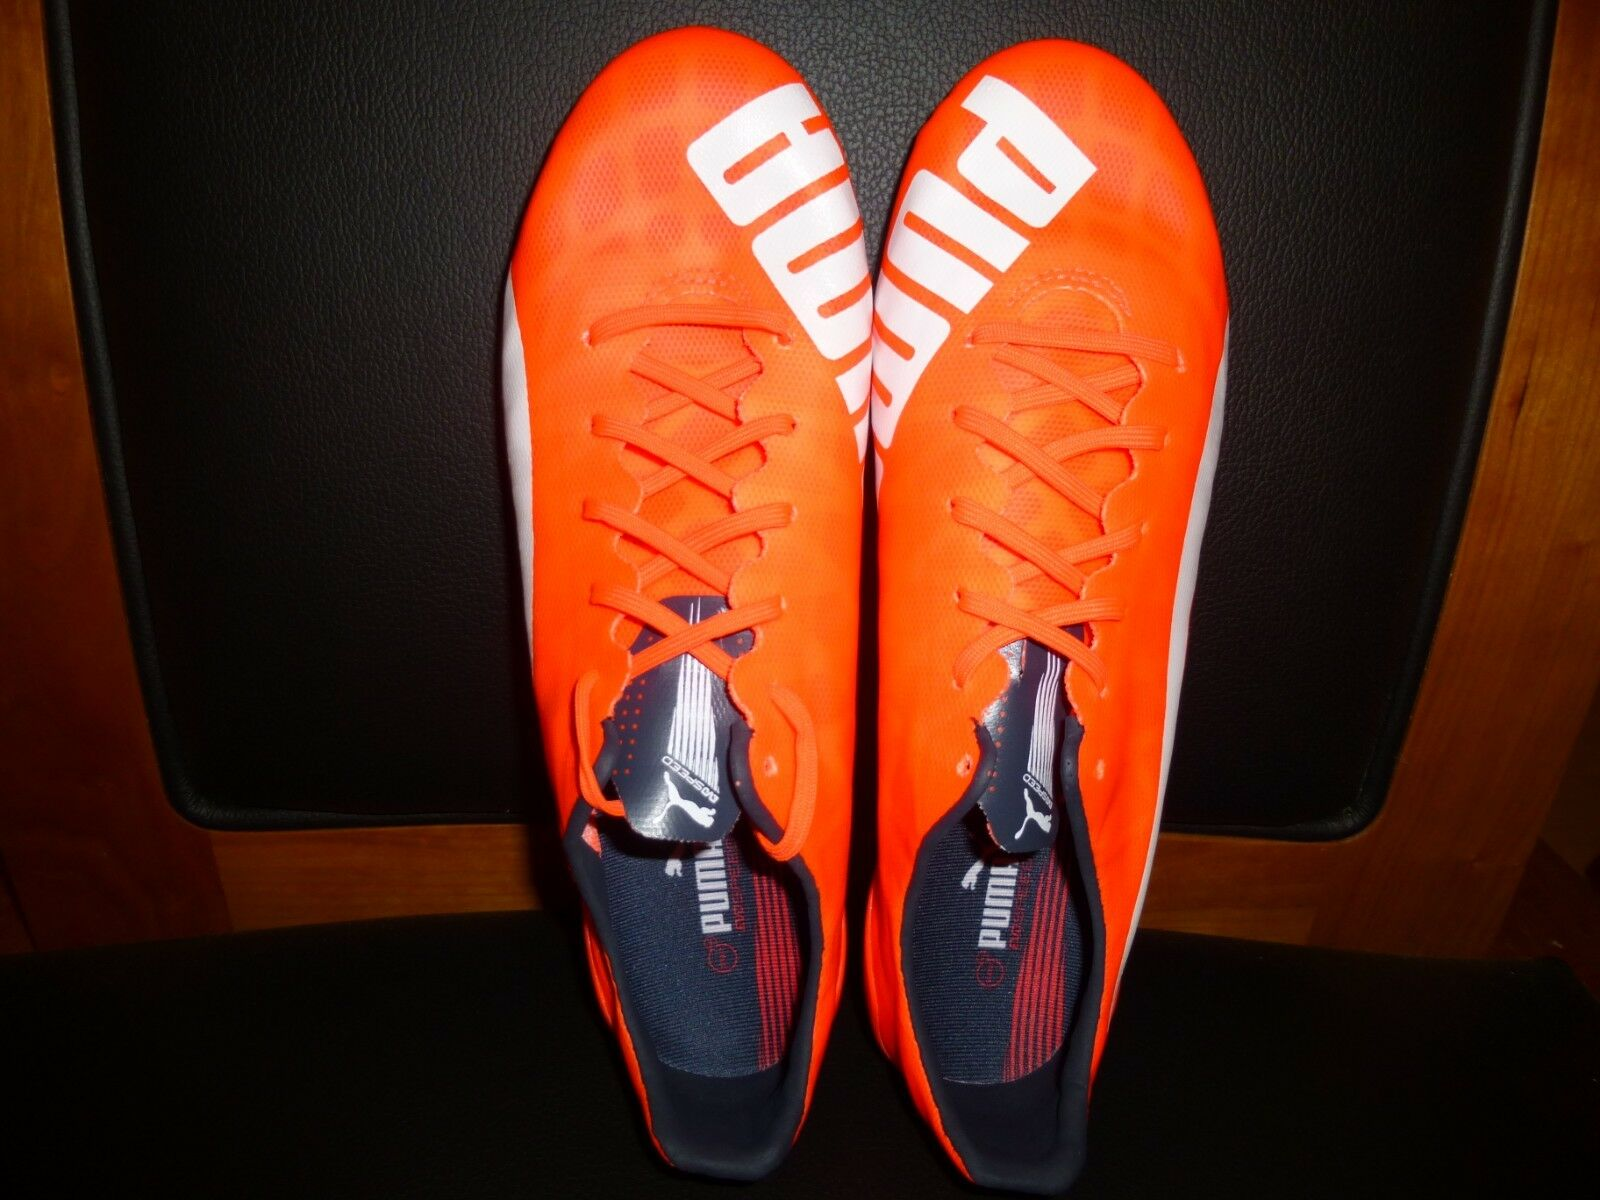 Men's Puma evoSPEED SL FG Soccer Cleats 103235 Lava Blast Orange Size 8